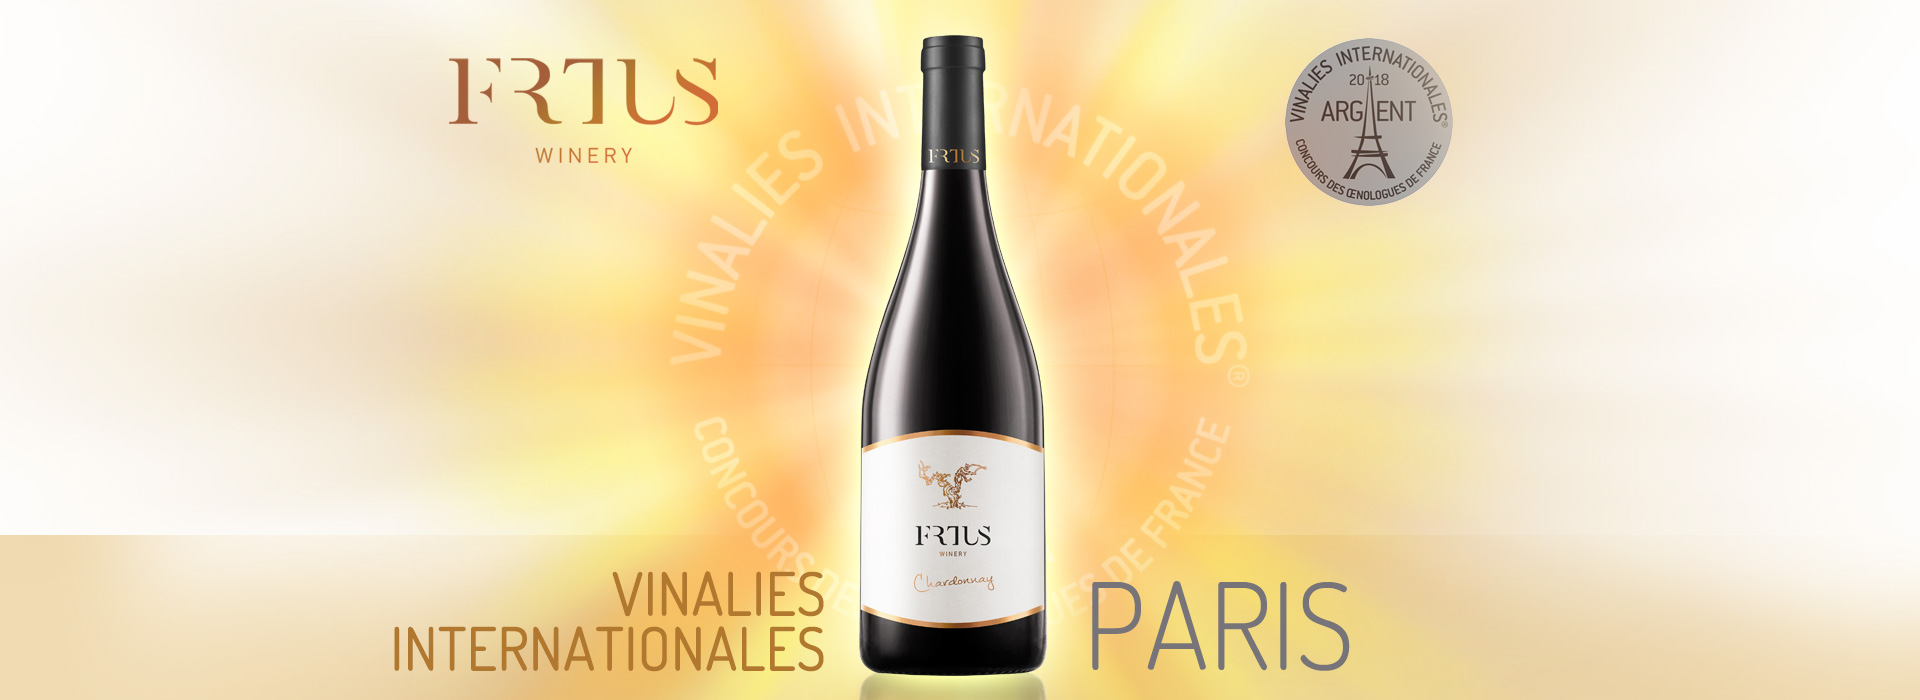 Chardonnay - Vinalies internationales Paris 2018